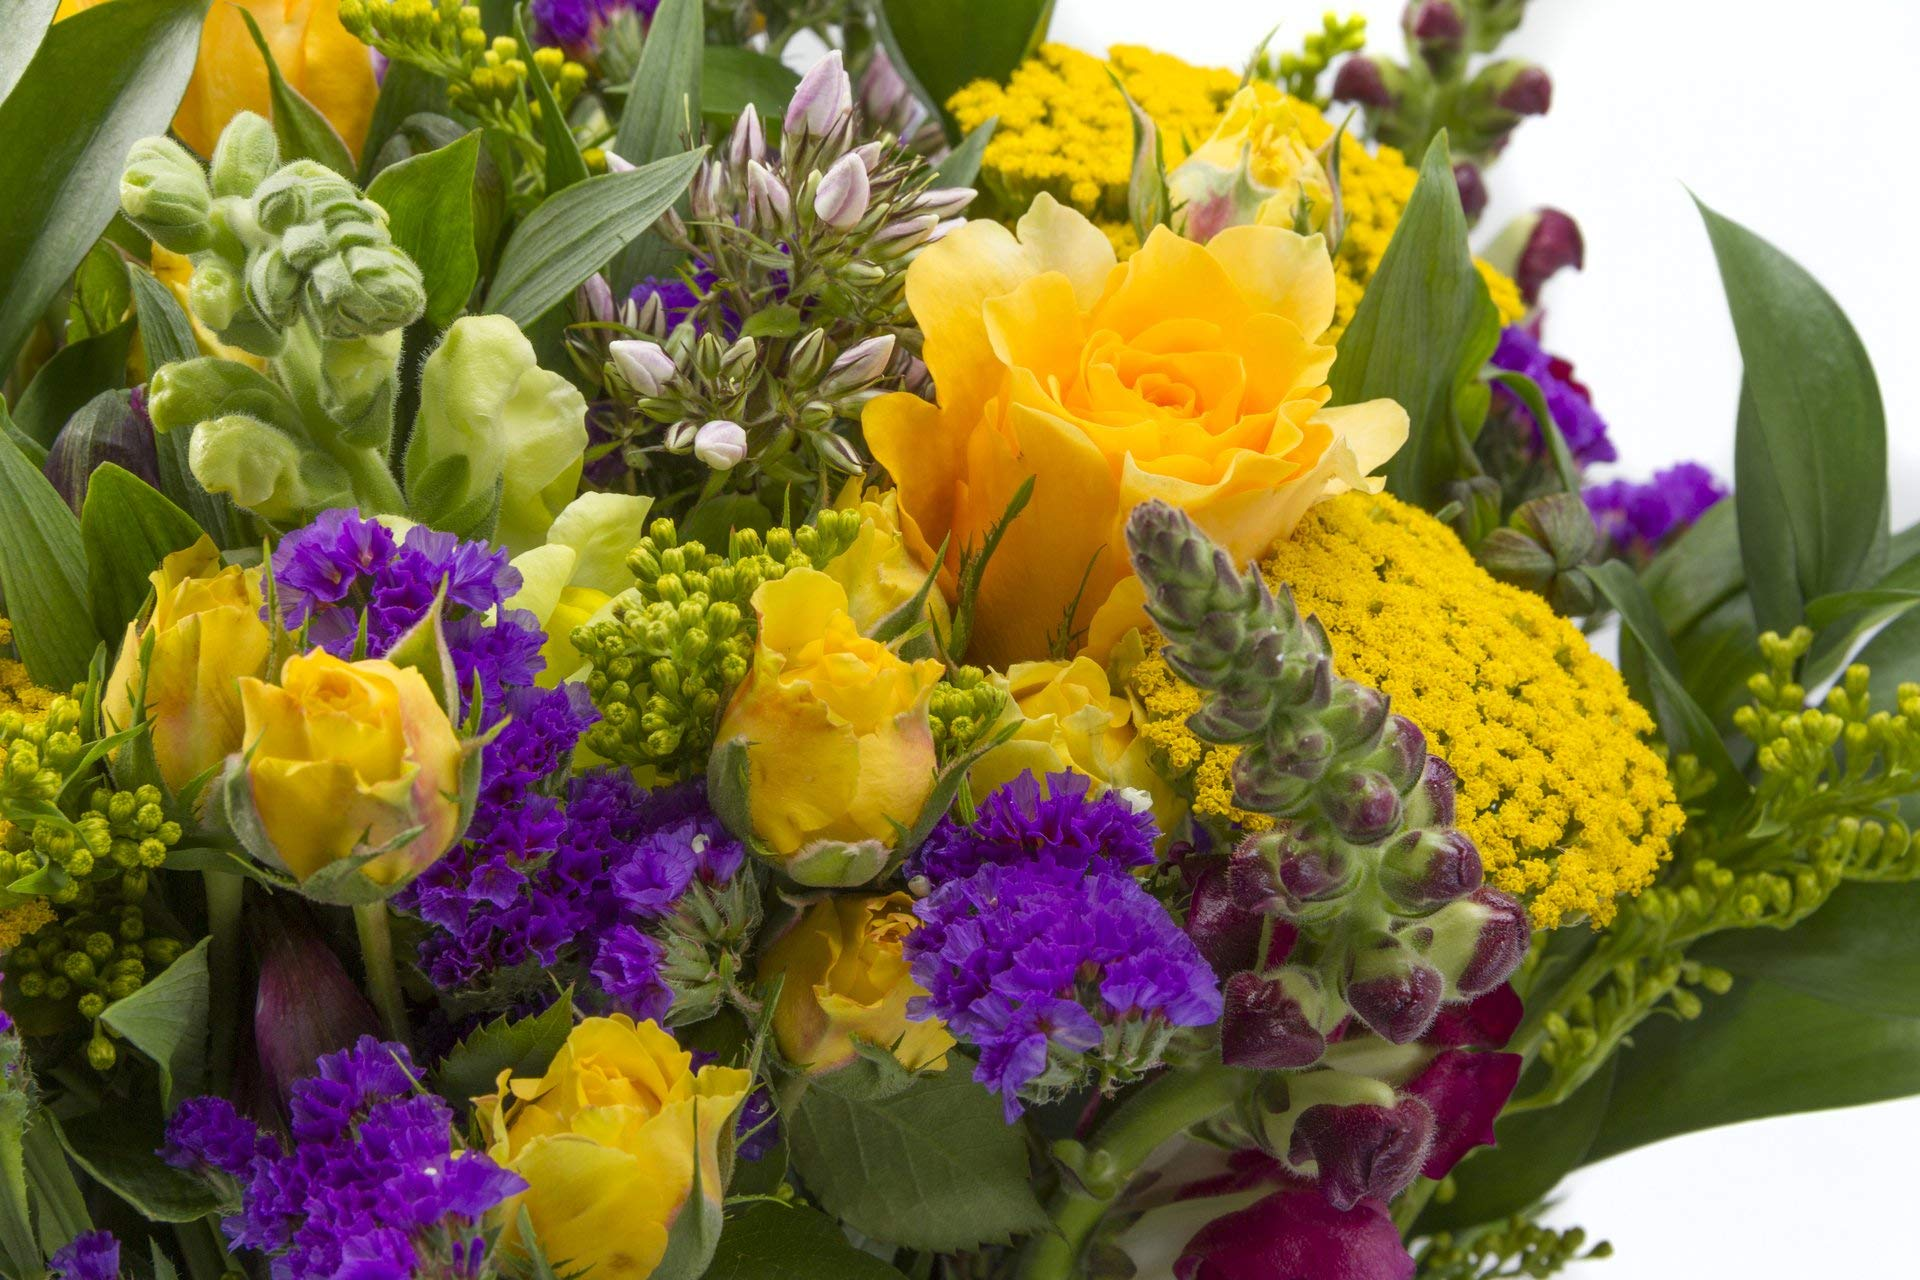 Chichi Party Purple and Yellow Flowers with Roses, Snapdragons, and More Sustainably Grown and Harvested, No Vase Included by BloomsyBox (Image #4)